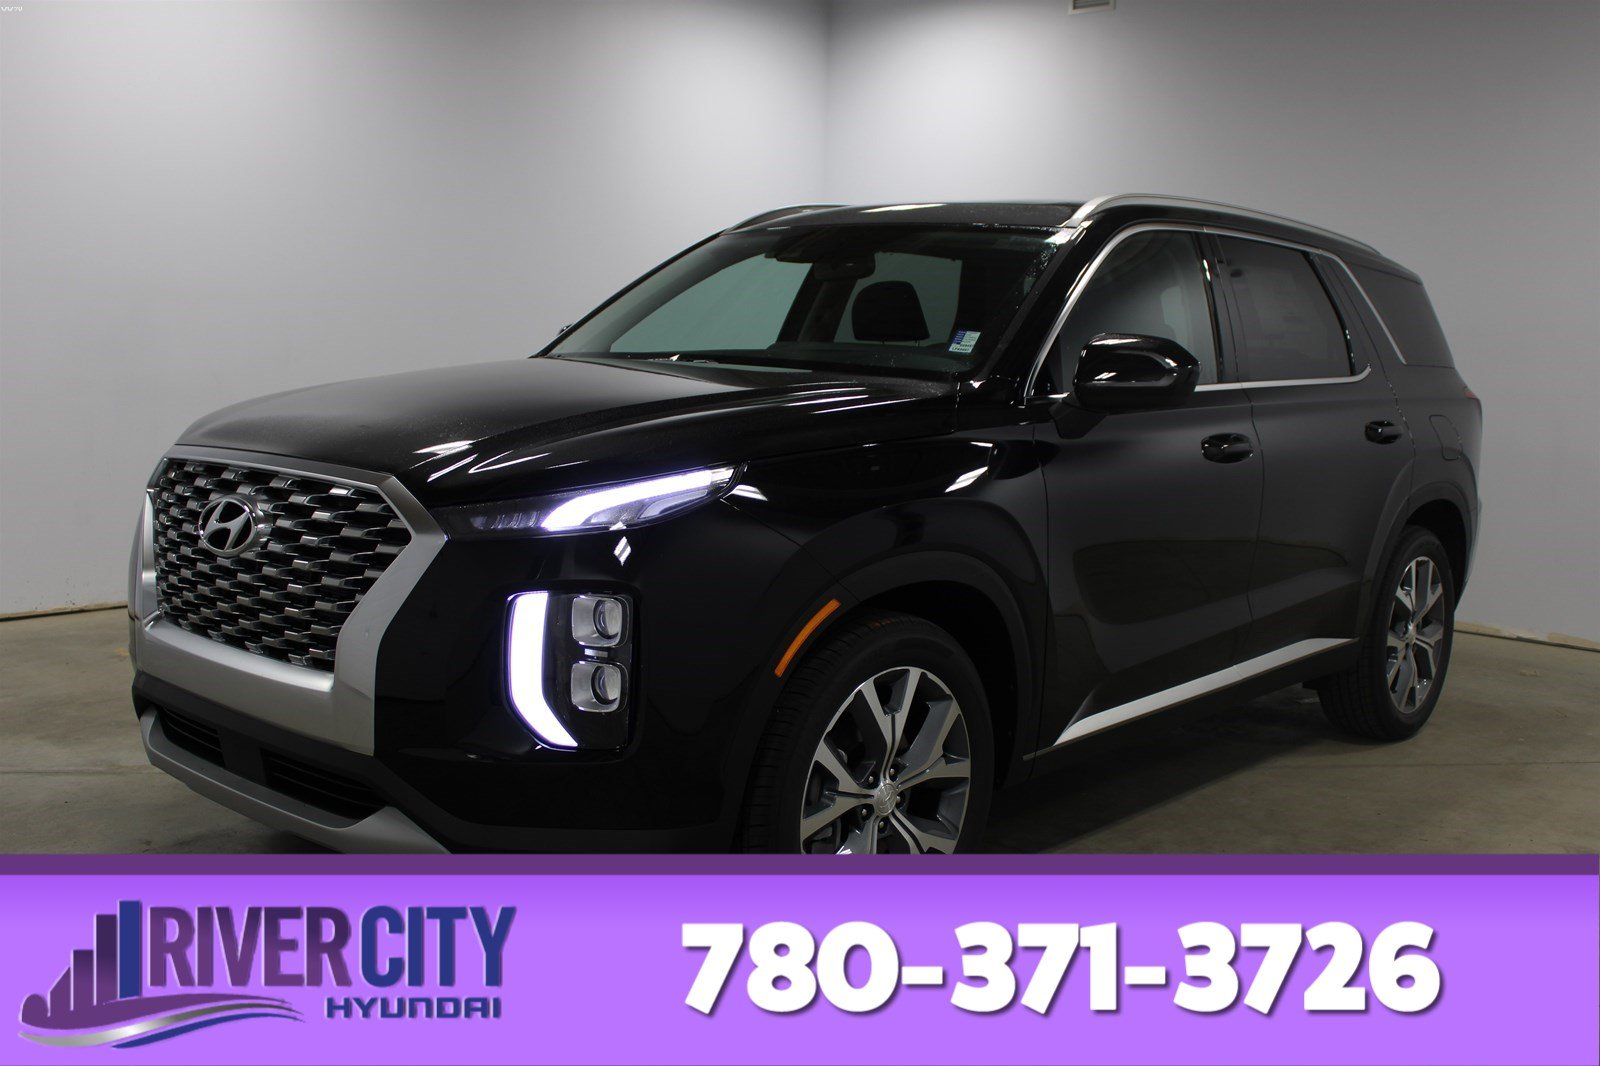 New 2020 Hyundai Palisade PREFERRED 3.8L AWD 8.0 TOUCH SCREEN DISPLAY,APPLE CAR PLAY/ANDROID AUTO,HEATED SEATS STEERING WHEEL,